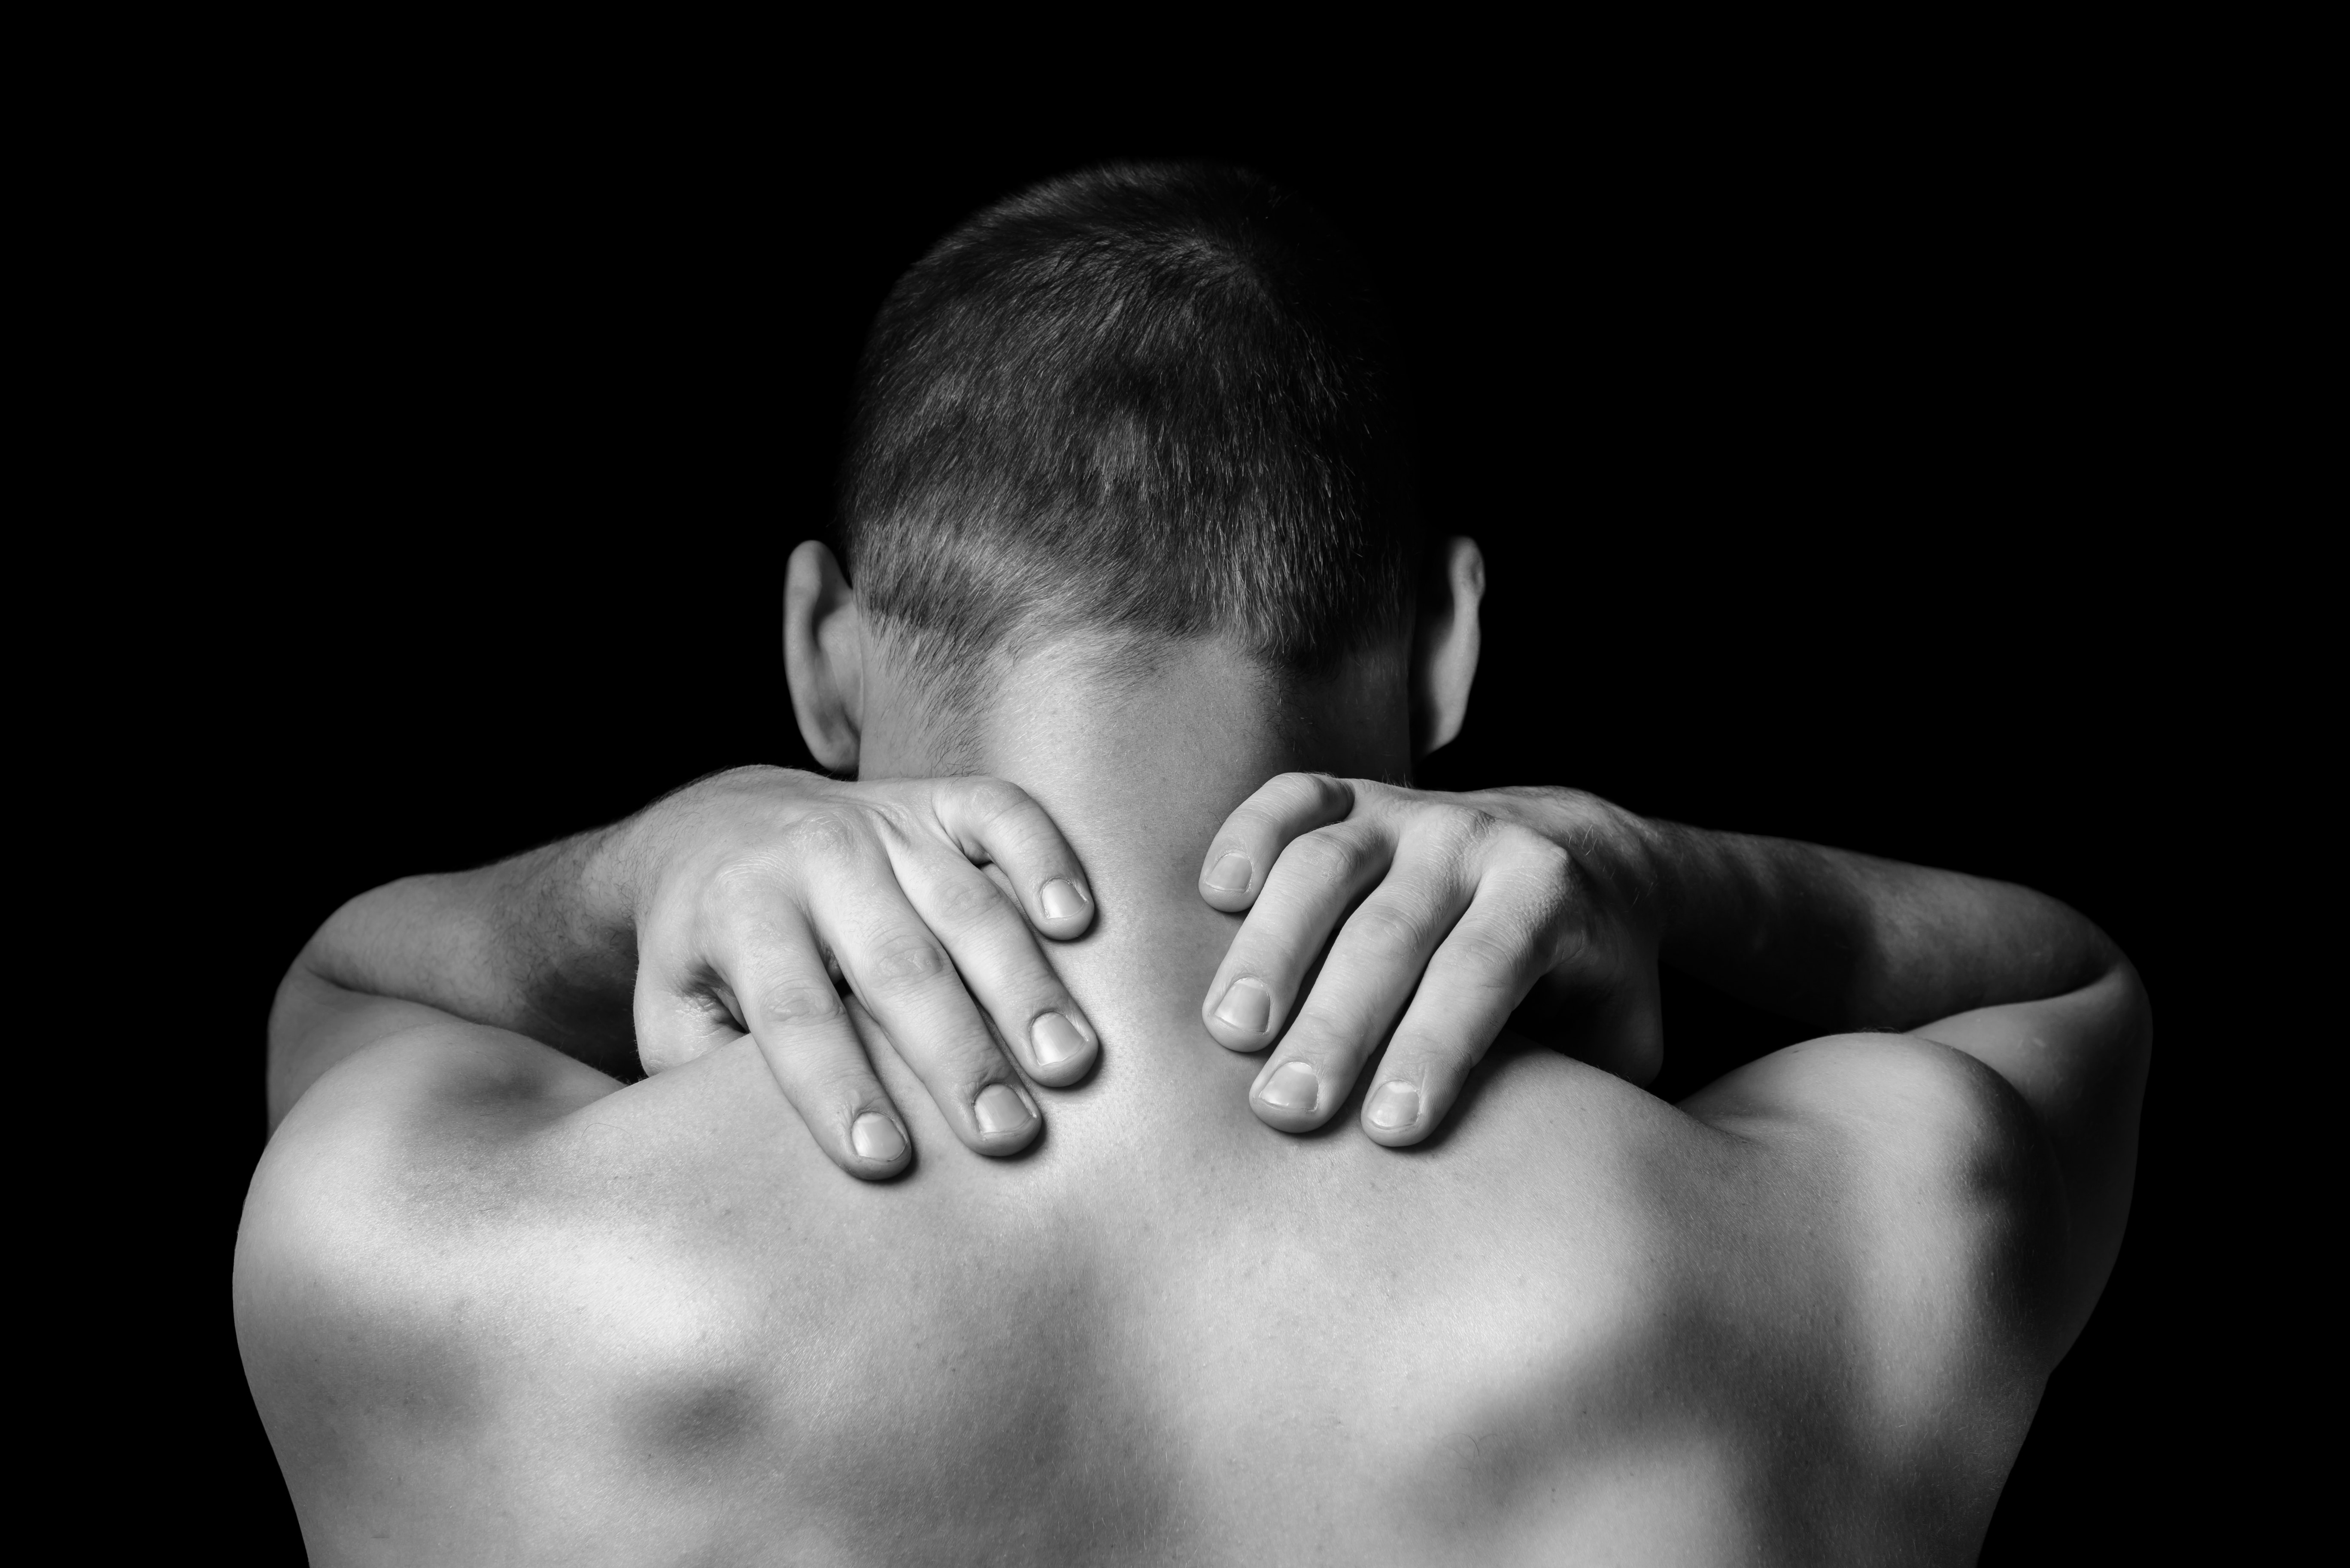 An image depicting a person suffering from pain in the back of the neck symptoms